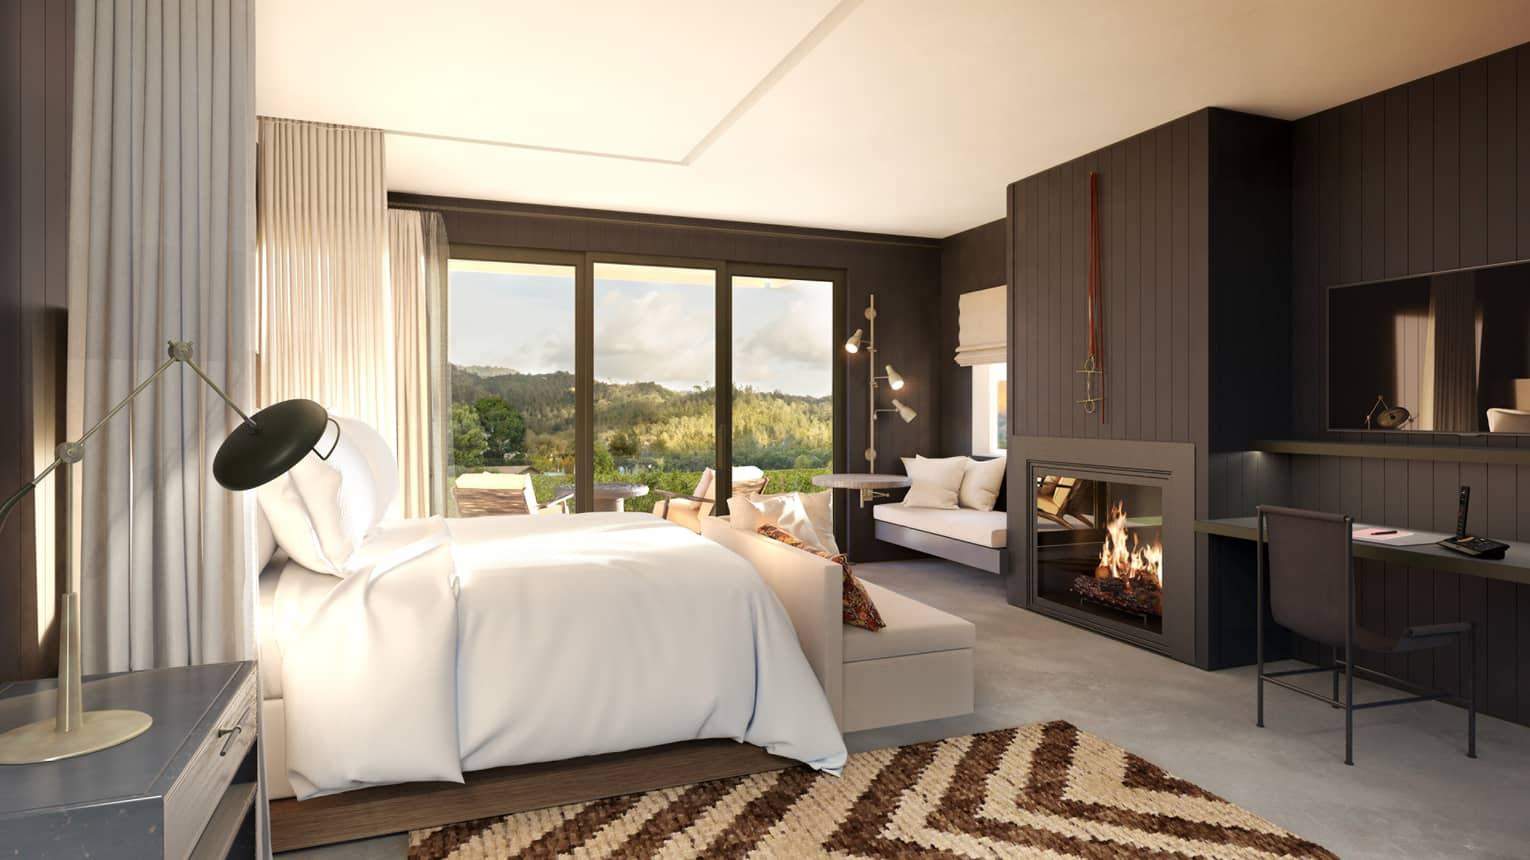 Guest bedroom with mountain views and a fireplace